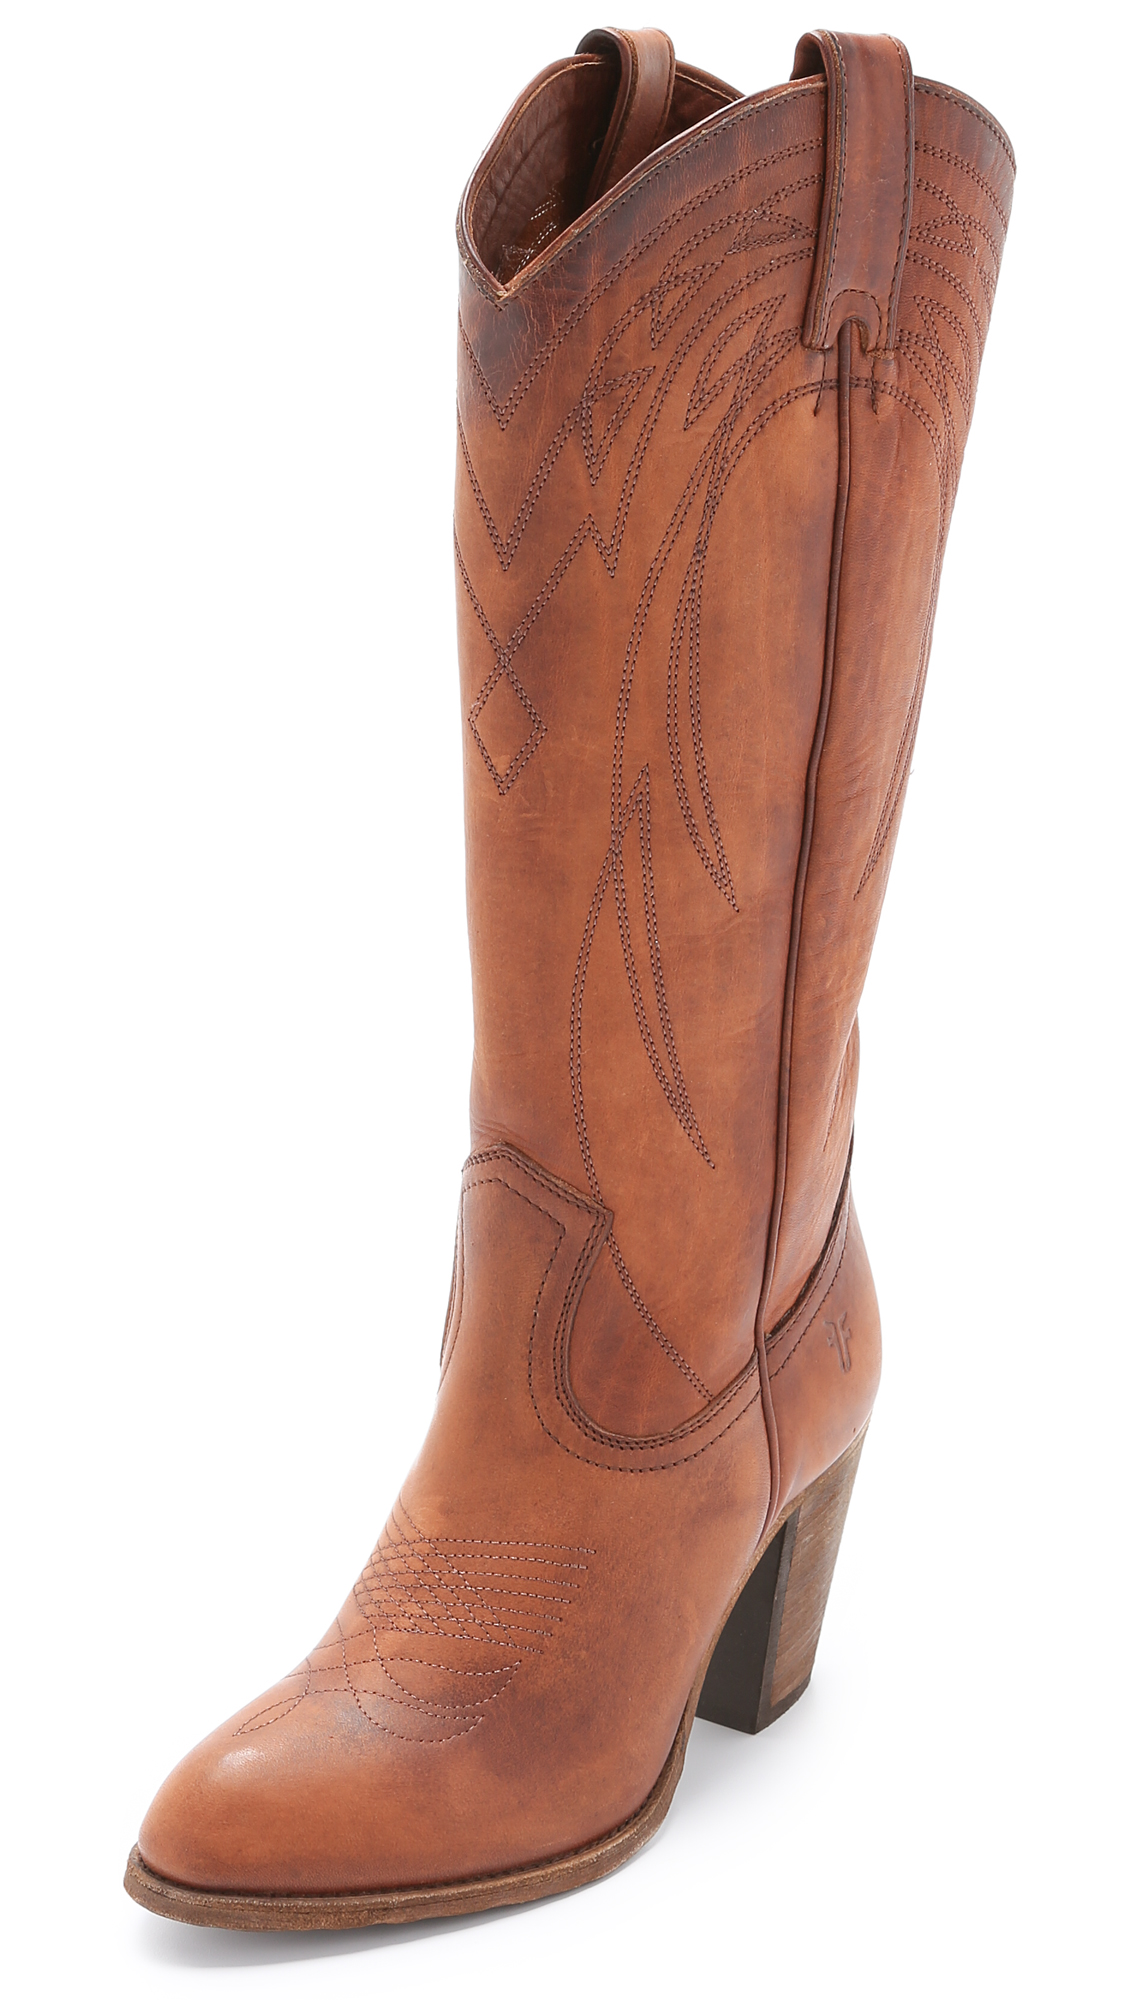 Frye Ilana Pull On Boots - Cognac at Shopbop